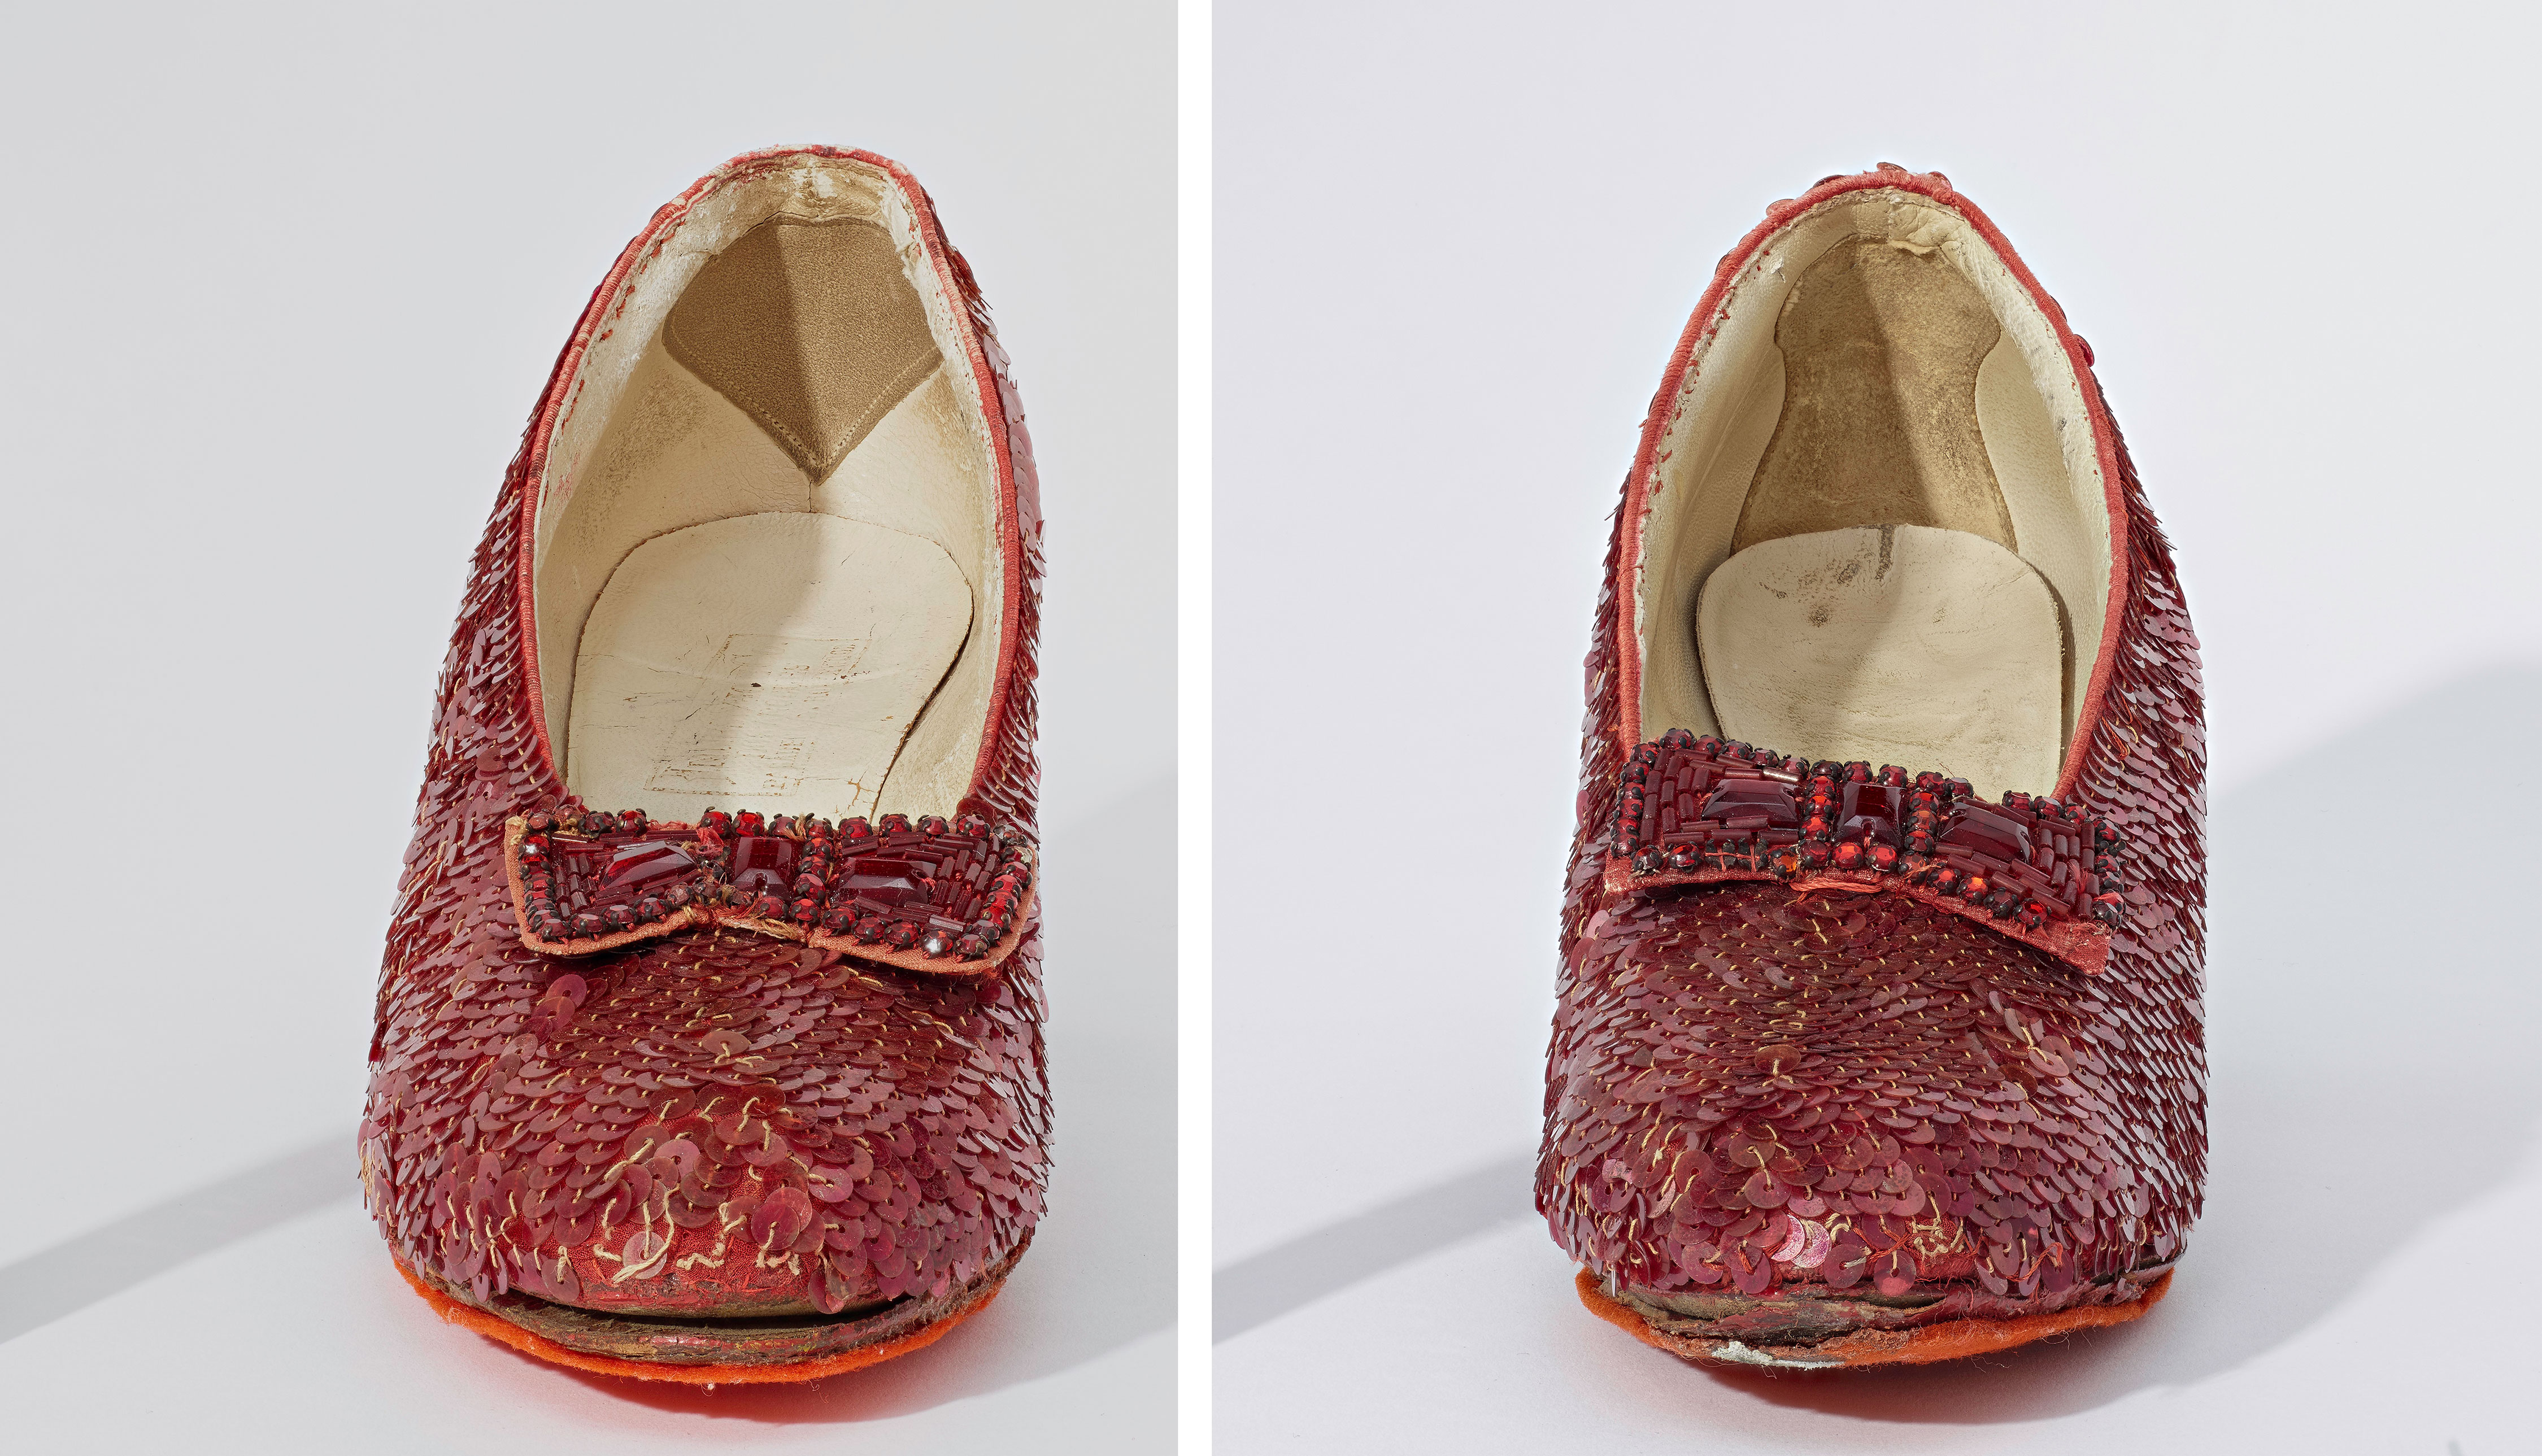 Two red shoes covered in sequins with bows. Inside each shoe, you can see the hell. They have different details in the heel. One is a tear. The other is an hour glass shape.